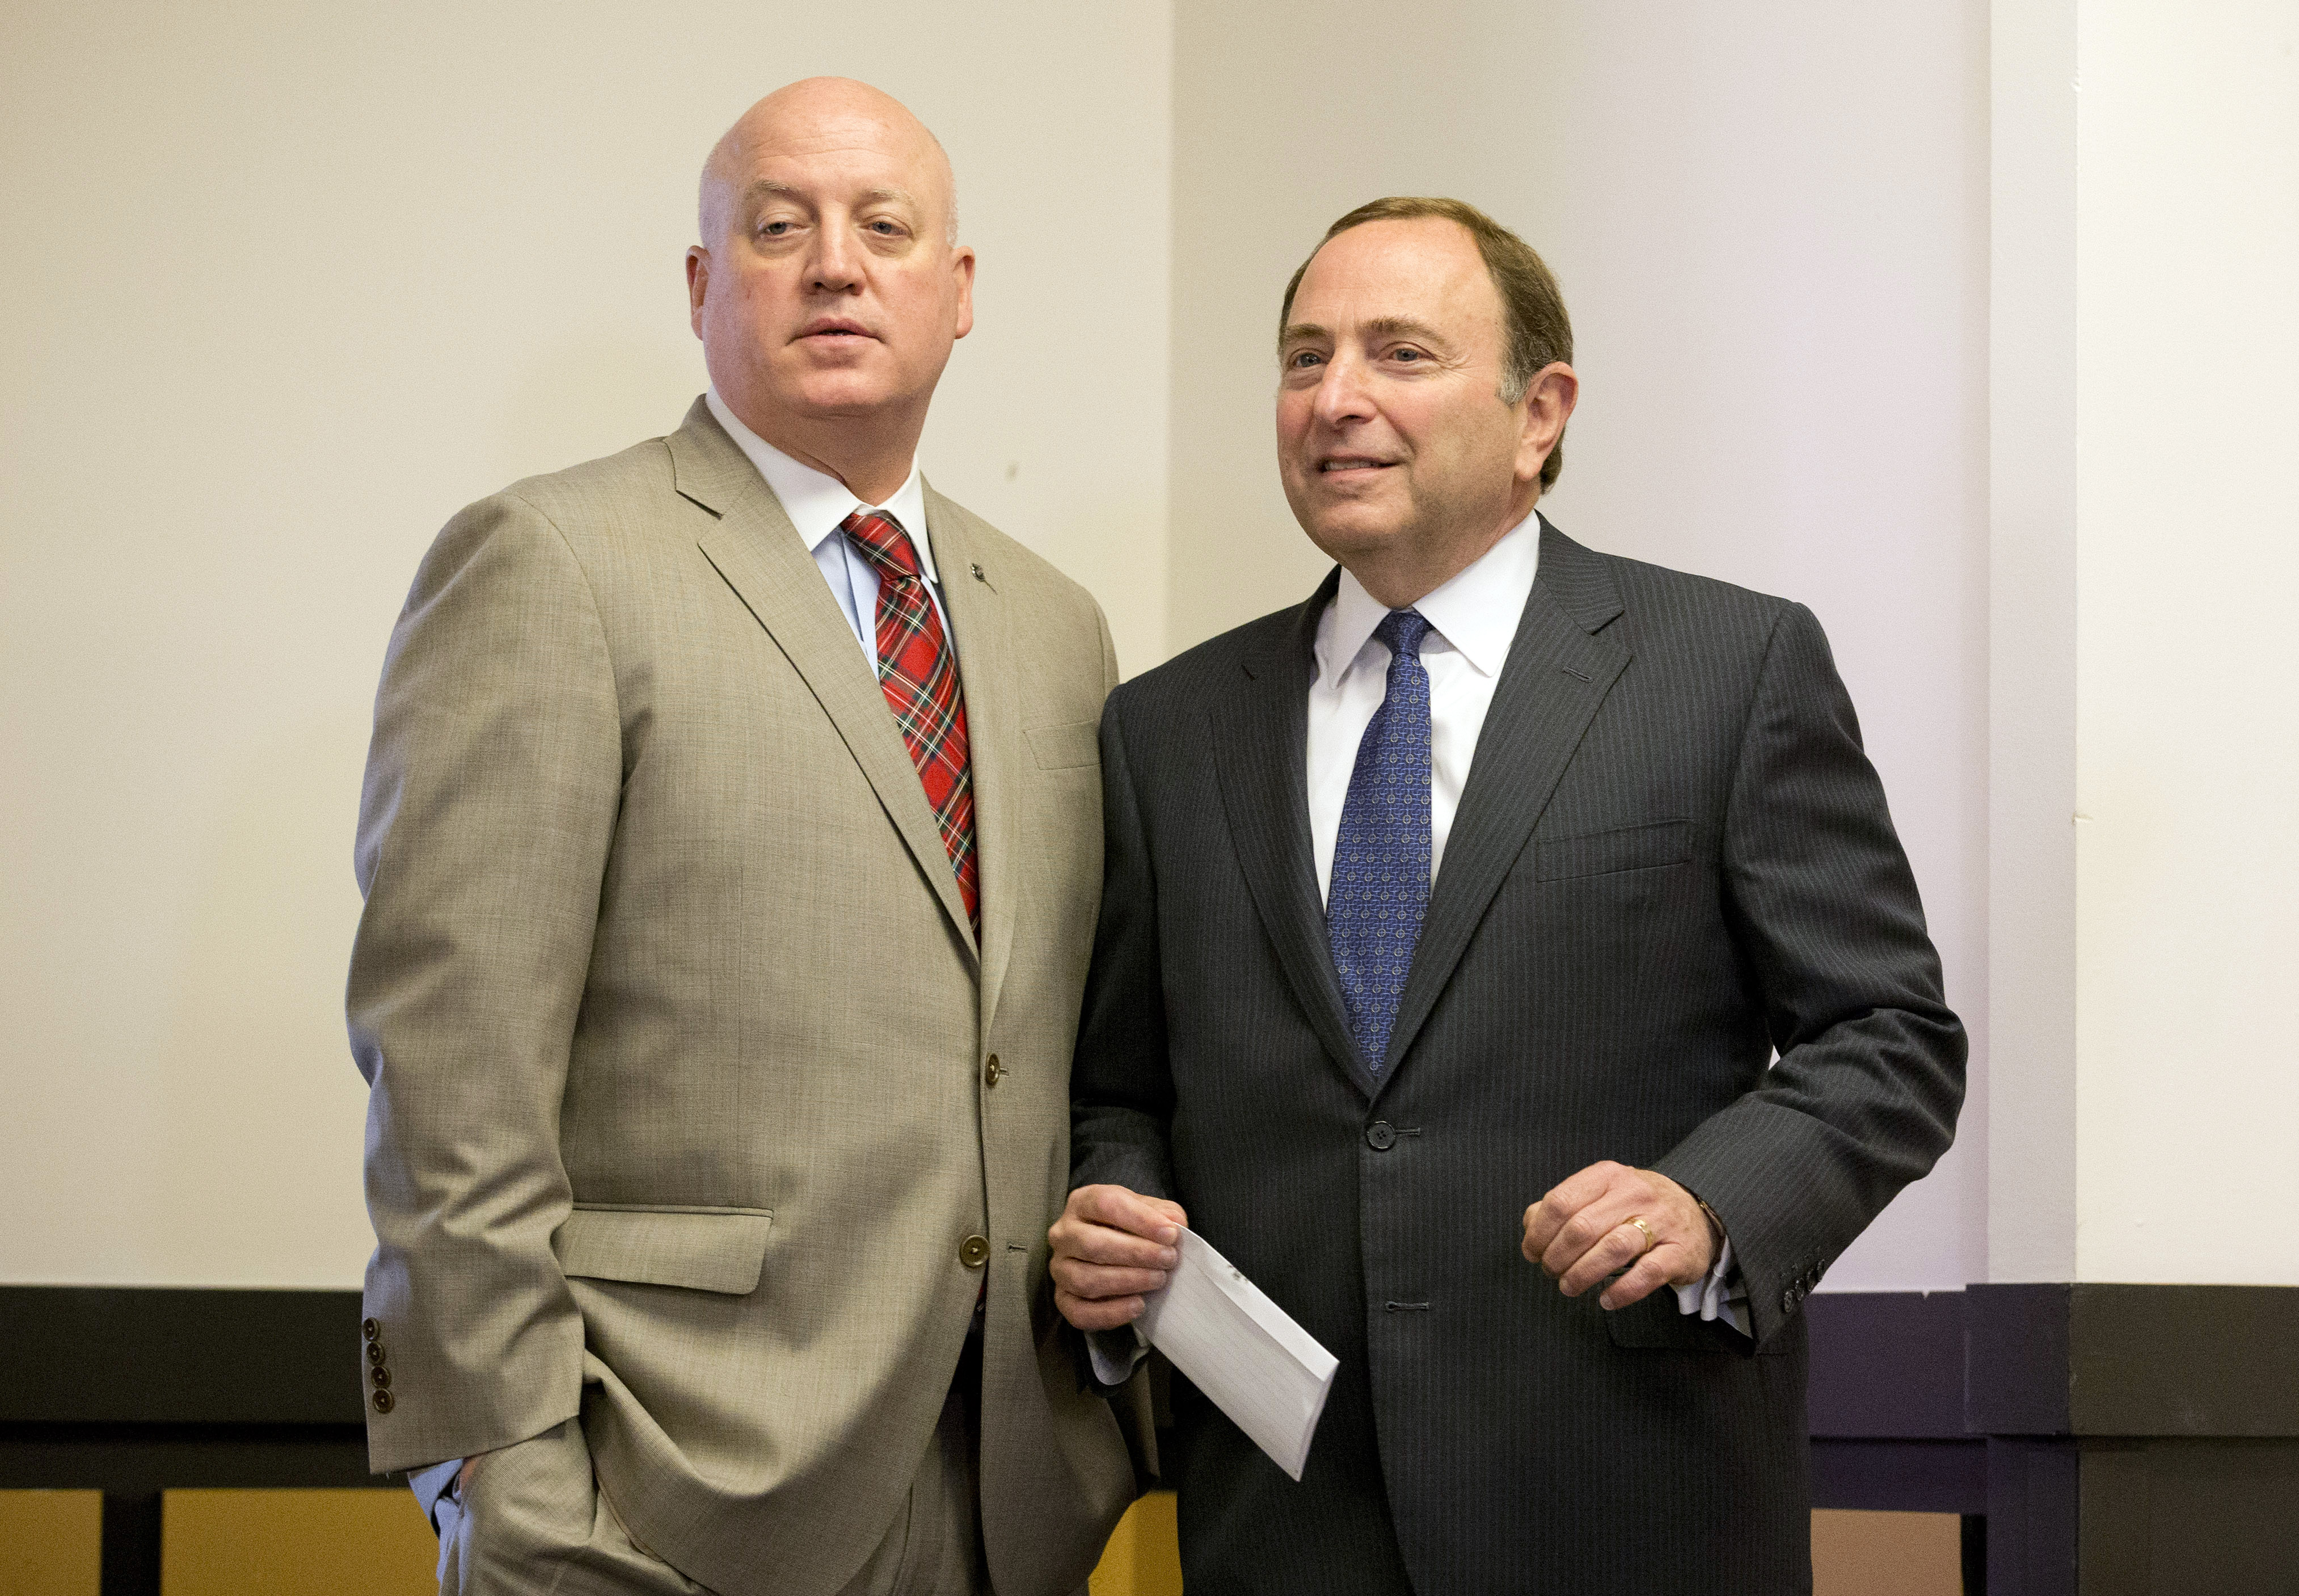 FILE - In this Dec. 9, 2014, file photo, NHL hockey commissioner Gary Bettman, right, and deputy commissioner Bill Daly pause before starting a news conference after attending an NHL owners meeting in Boca Raton, Fla. Bill Foley is trying to bring an NHL